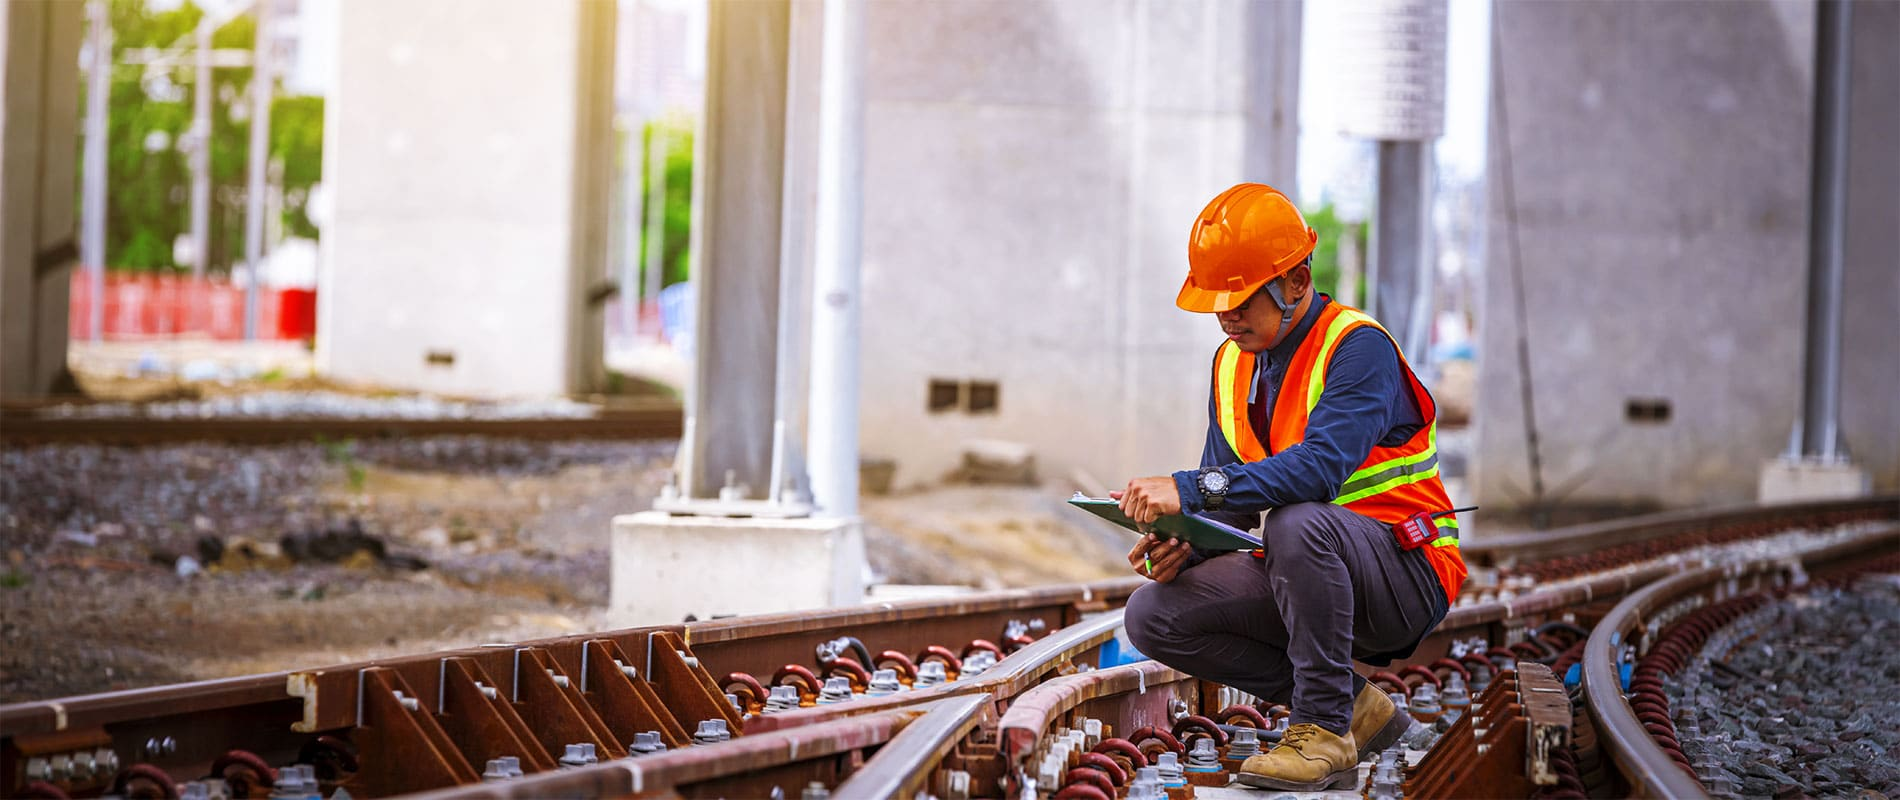 Texas Railroad Worker Accident Attorney